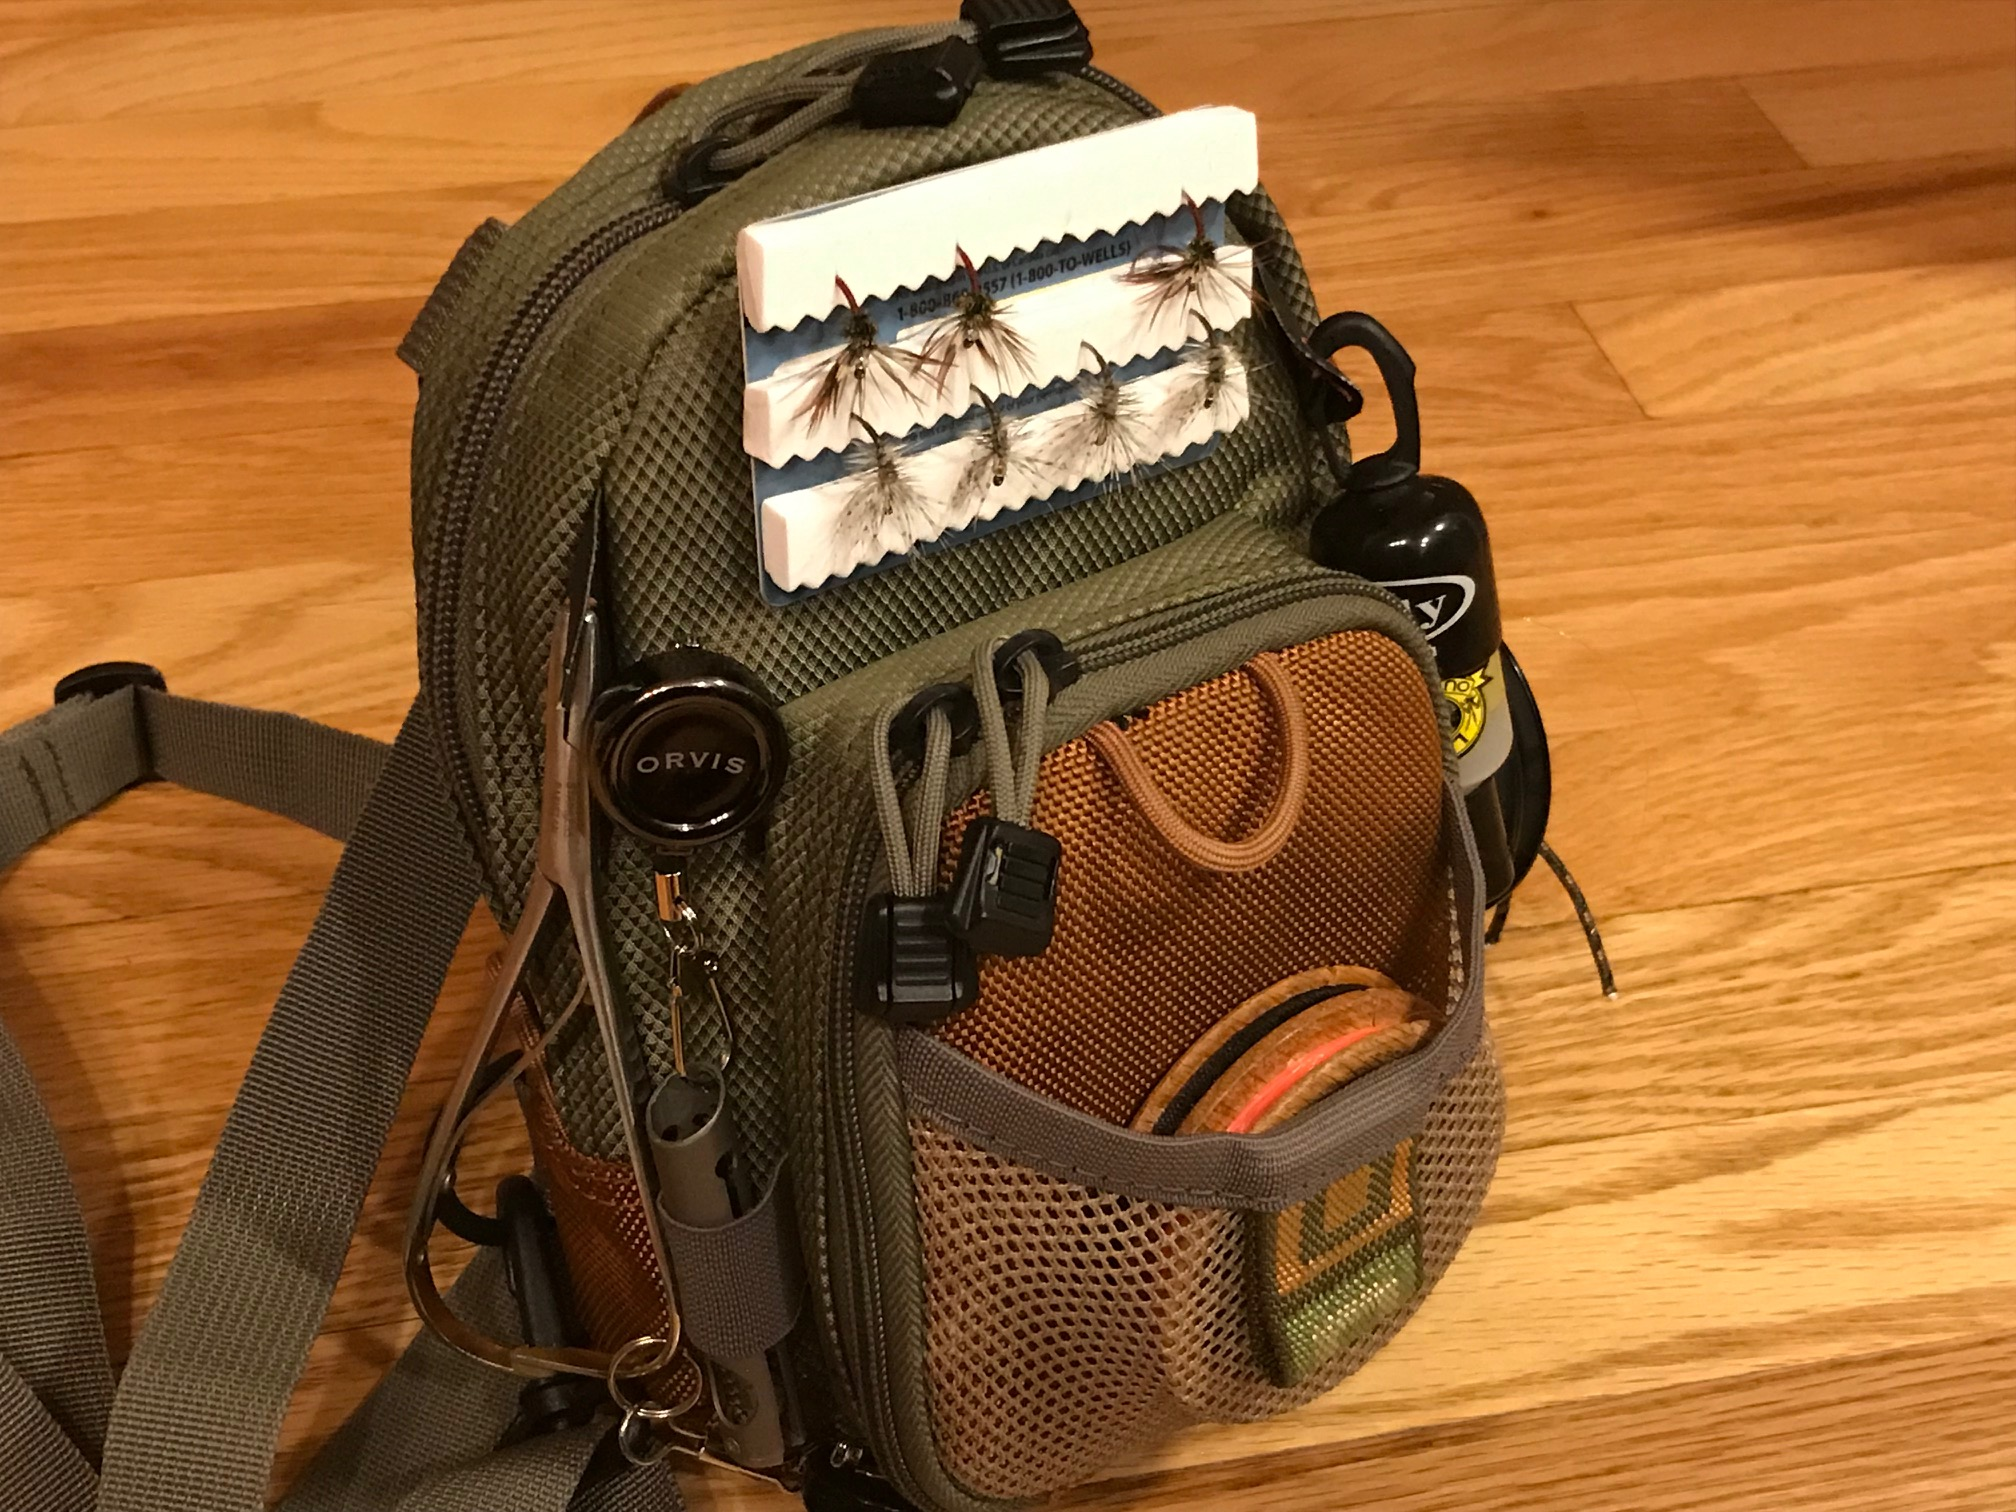 https://www.tenkaratalk.com/2011/11/fishpond-san-juan-chest-pack-review/